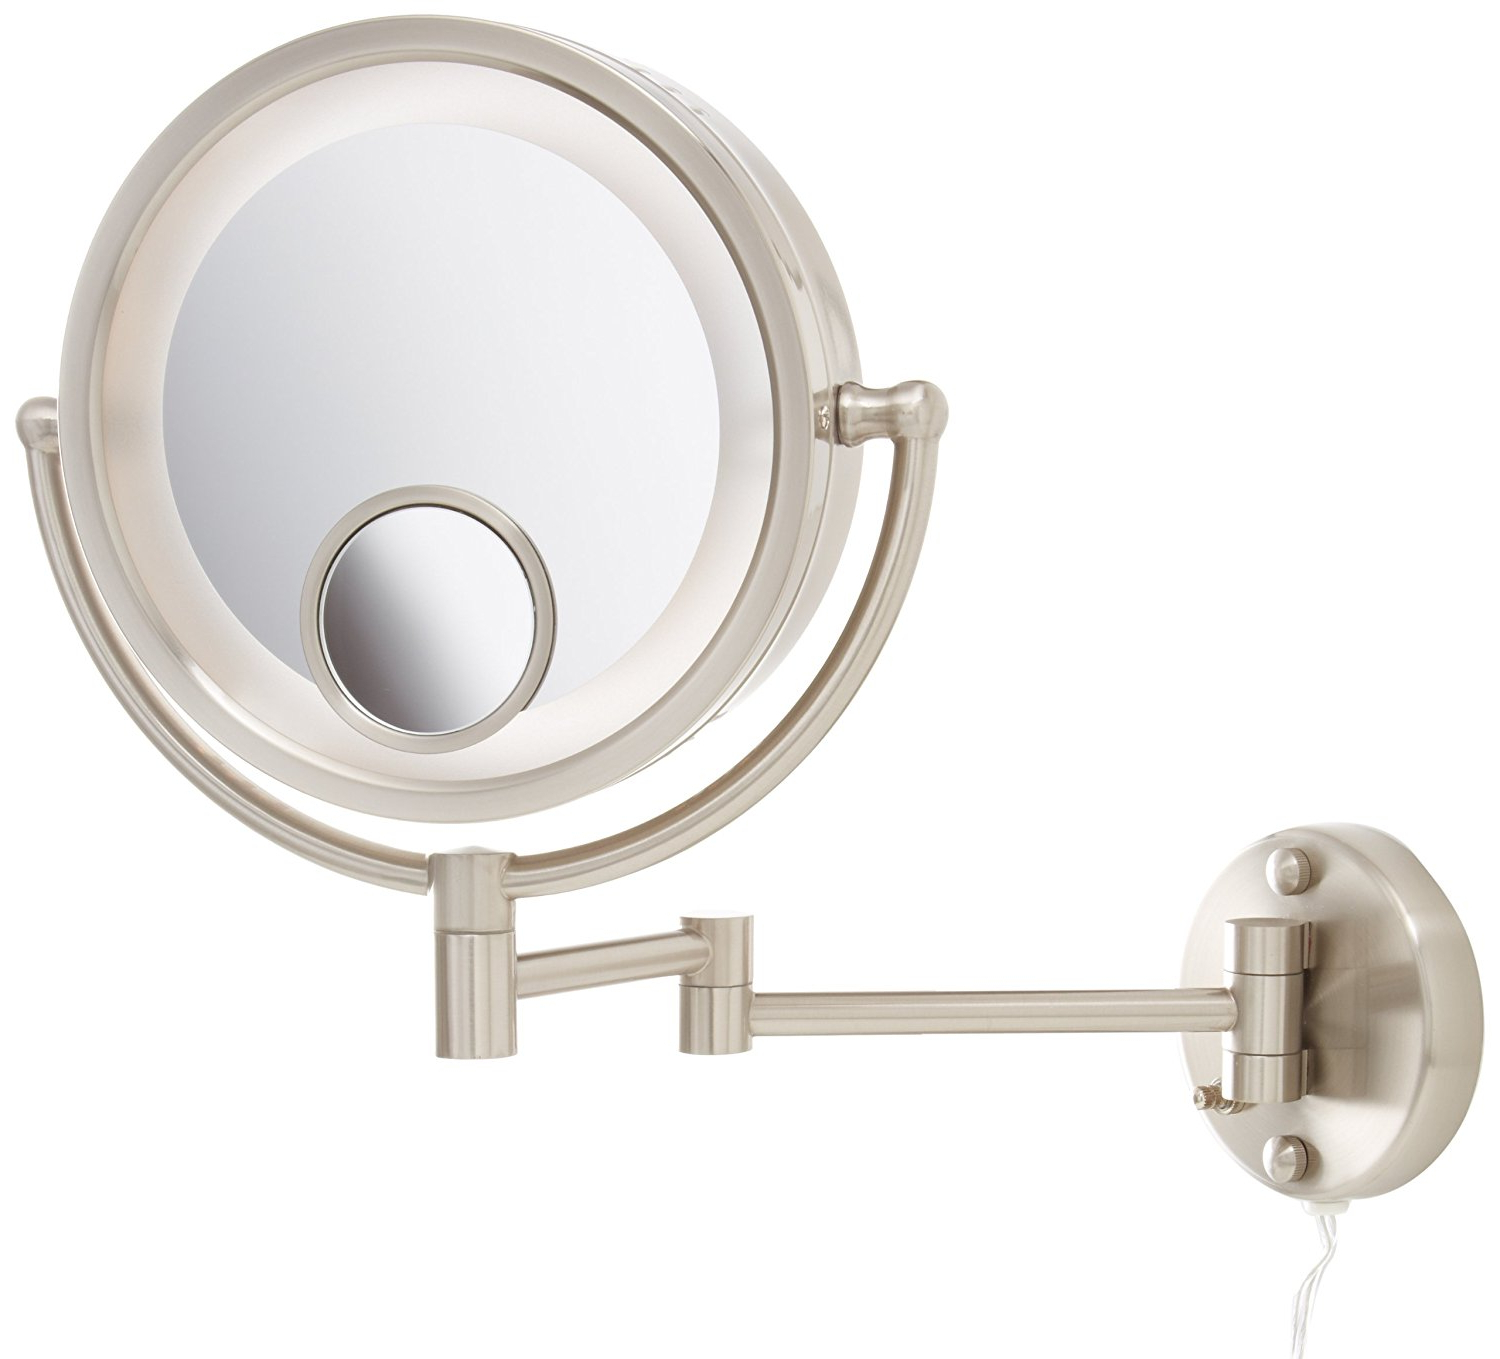 Inspirations: Outstanding Lighted Magnifying Mirror Design For Home For Preferred Magnified Wall Mirrors (View 4 of 20)